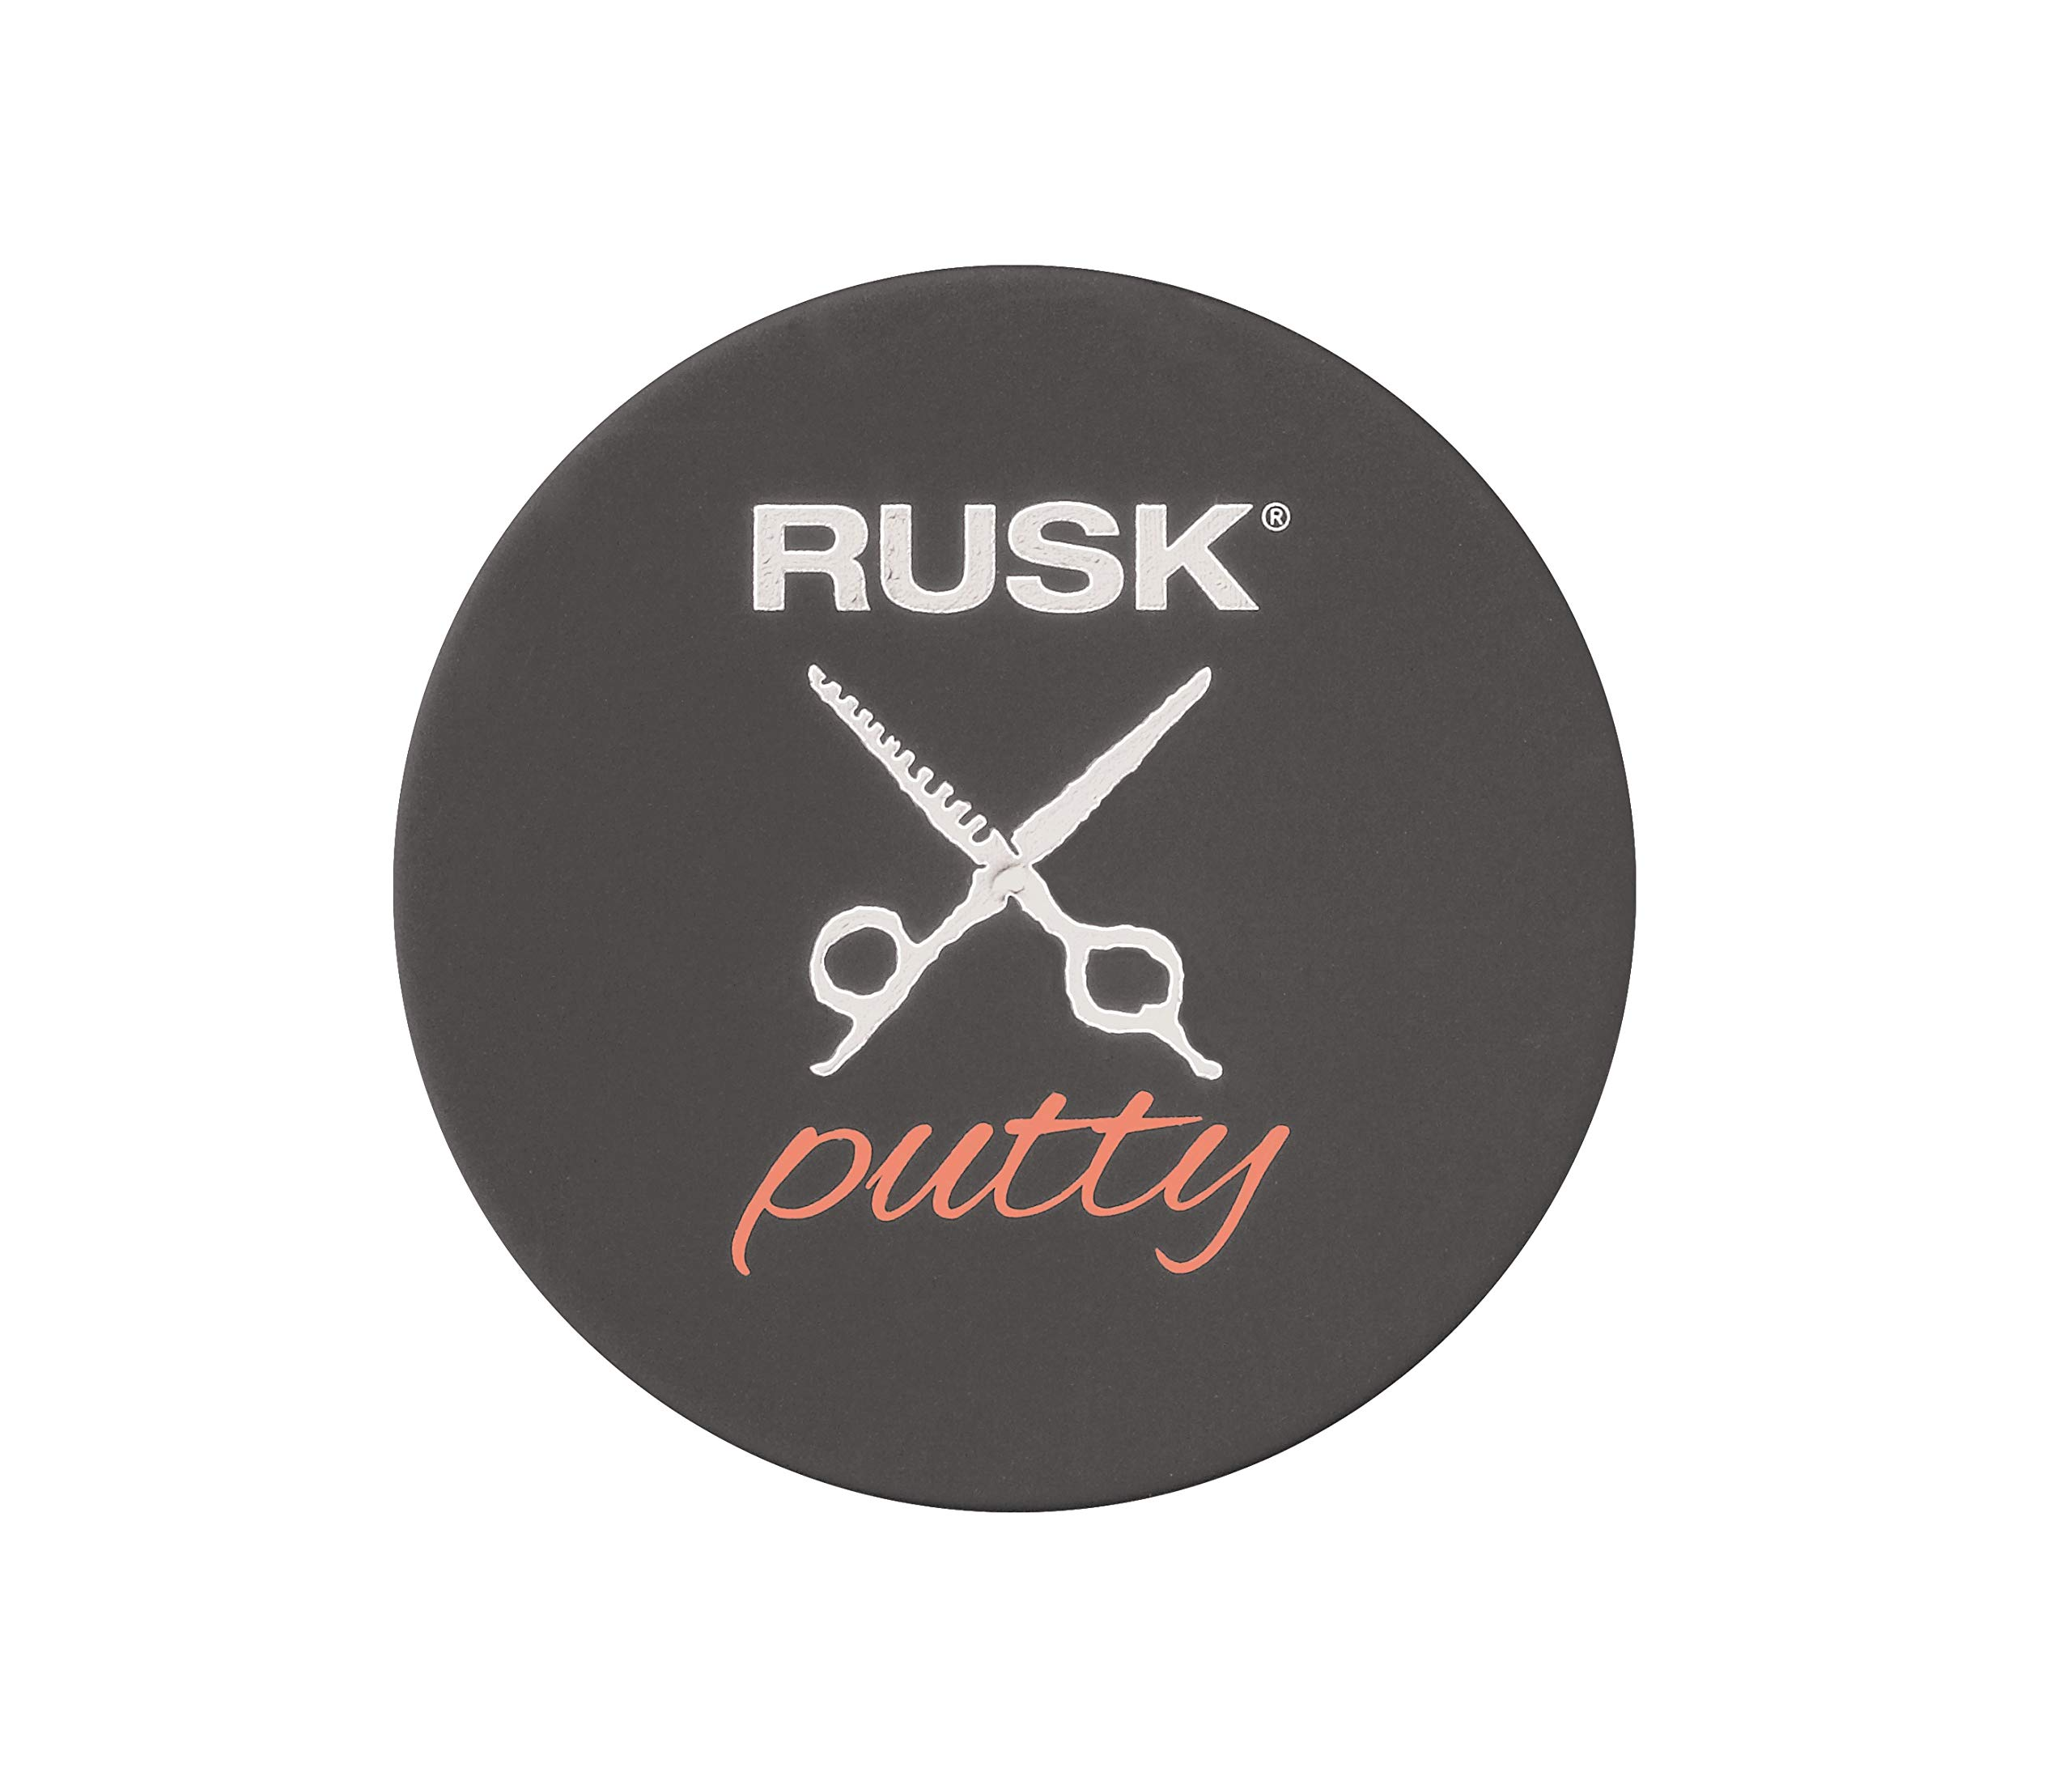 RUSK Putty Pomade, 3.7 fl. oz. by RUSK